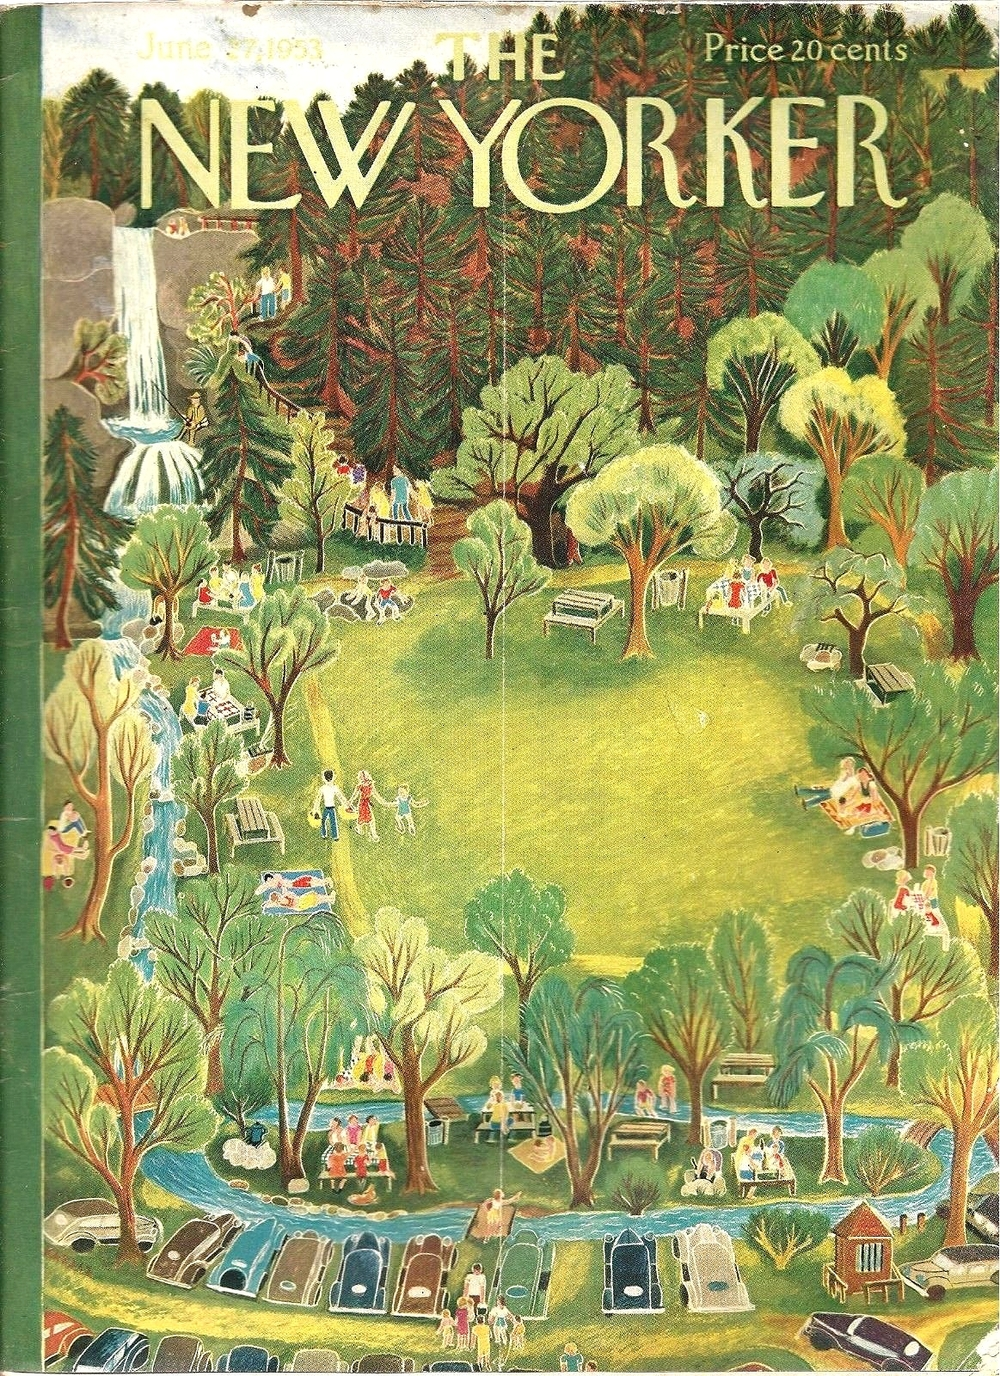 The New Yorker June 1953 | Ilonka Karasz via THE JUMPING FROG